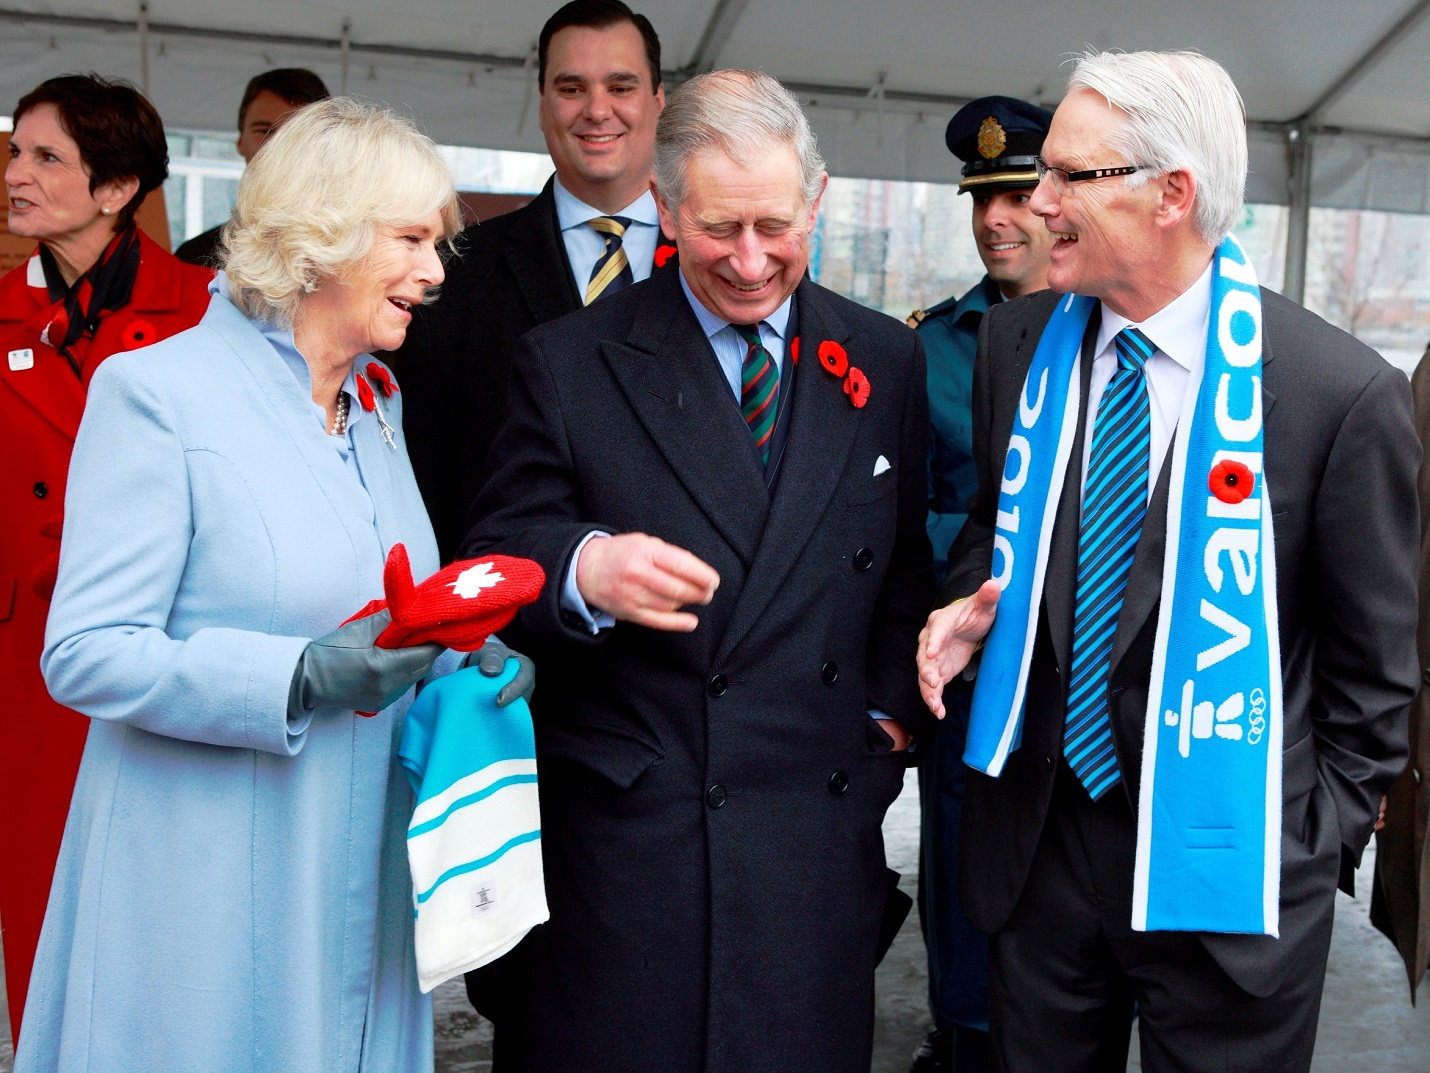 Presentation of Vancouver Olympics souvenir mitts and scarves by Premier Gordon Campbell